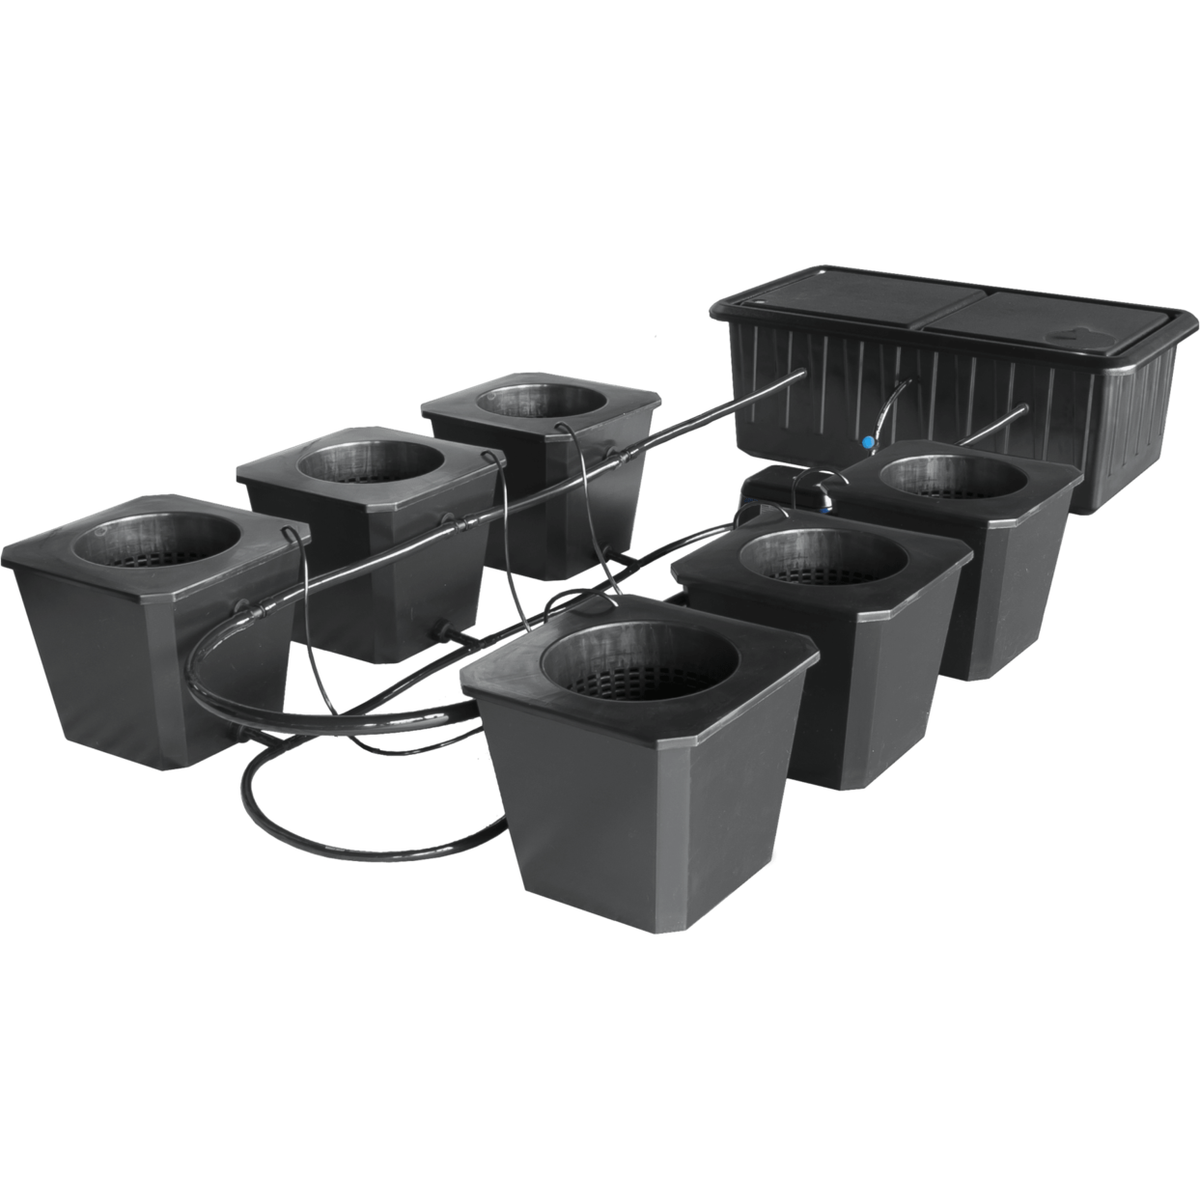 SuperCloset SuperCloset 6 Site Bubble Flow Buckets Hydroponic Grow System